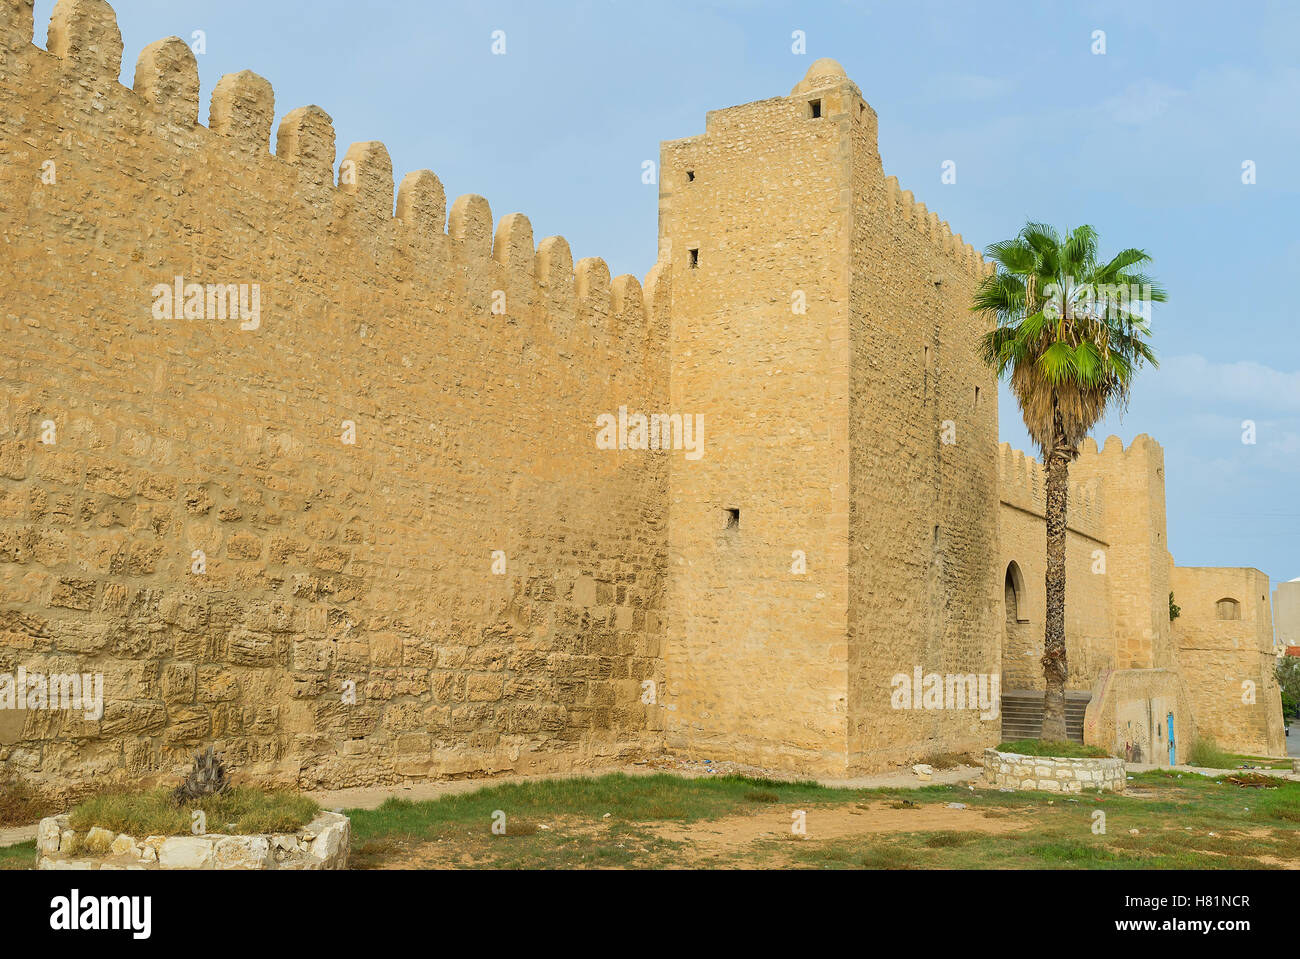 The well preserved fortification of Sousse has many gates from each side, Tunisia. - Stock Image